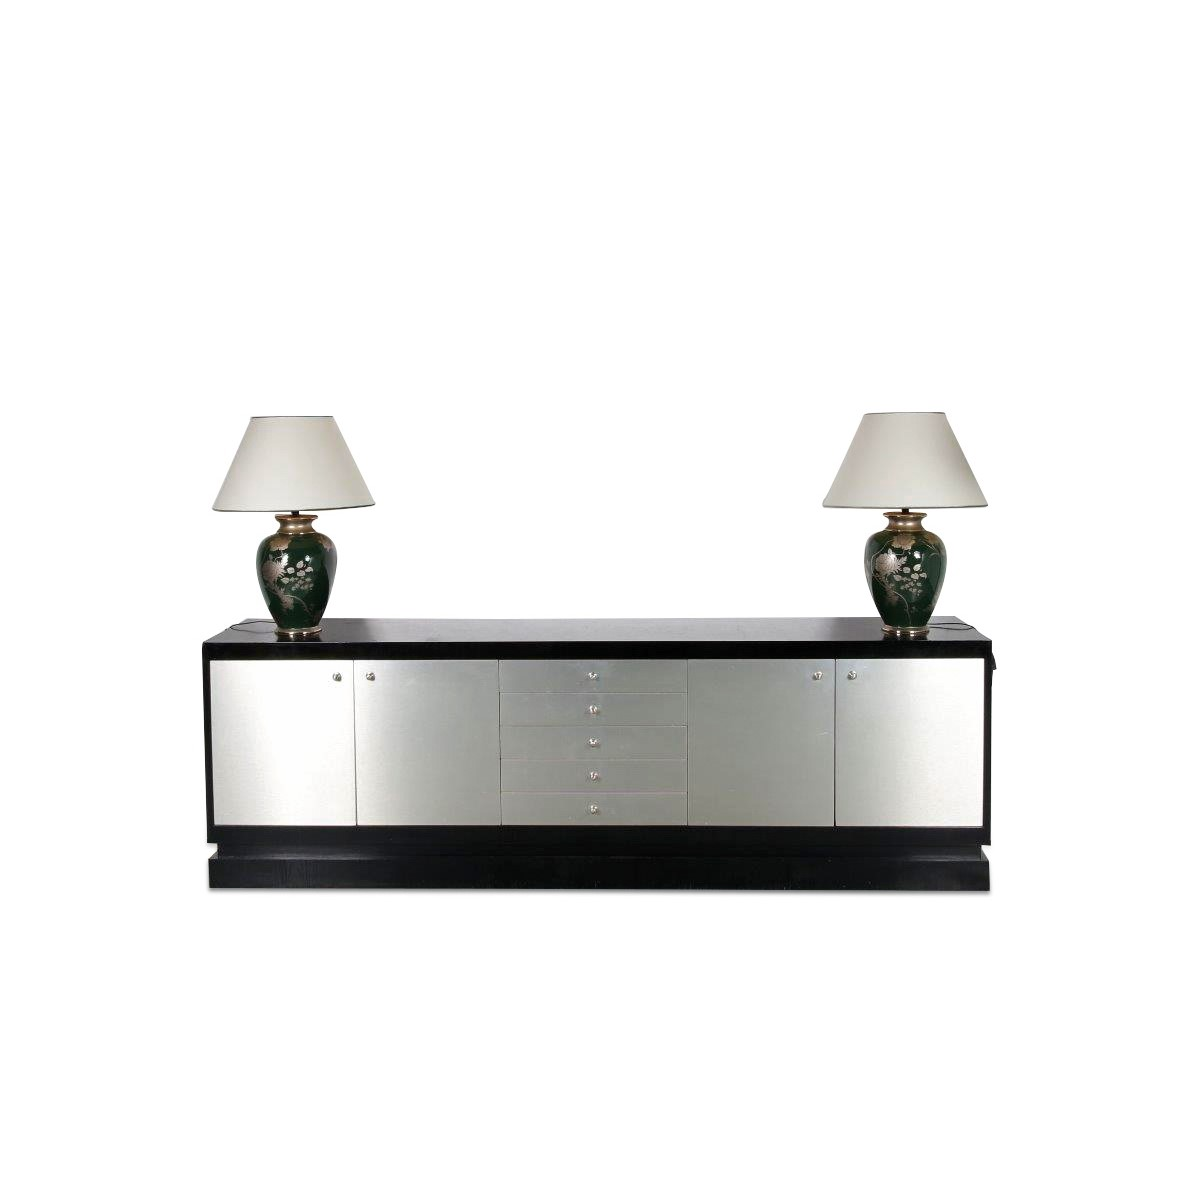 m23533 1970s XL sideboard in black wood with aluminium covered drawers and doors De Coene / Belgium